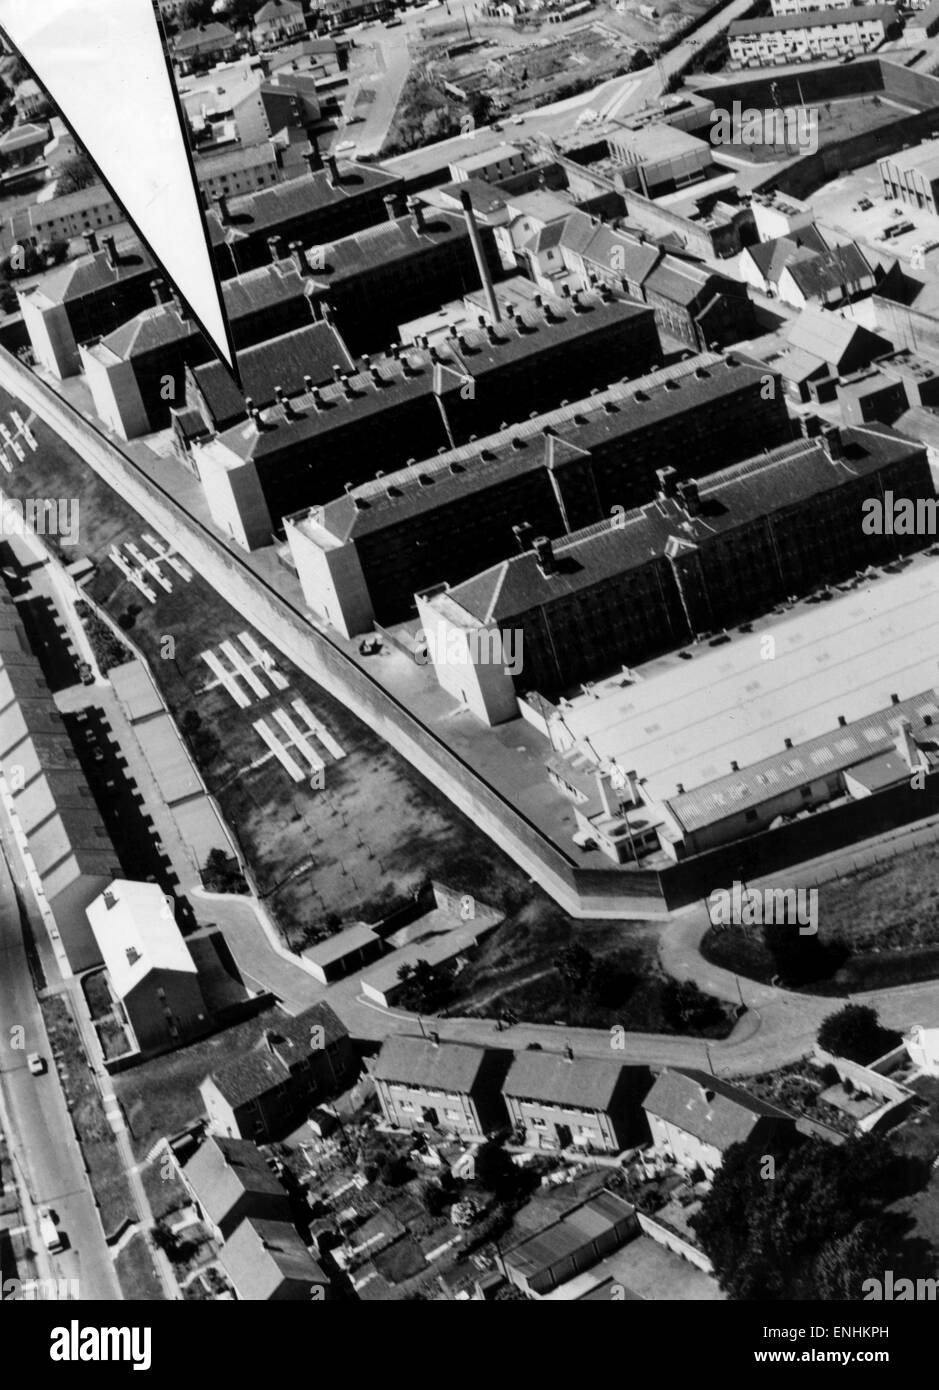 Aerial of HMP Barlinnie Prison with riot torn B Block arrowed, 6th January 1987. - Stock Image